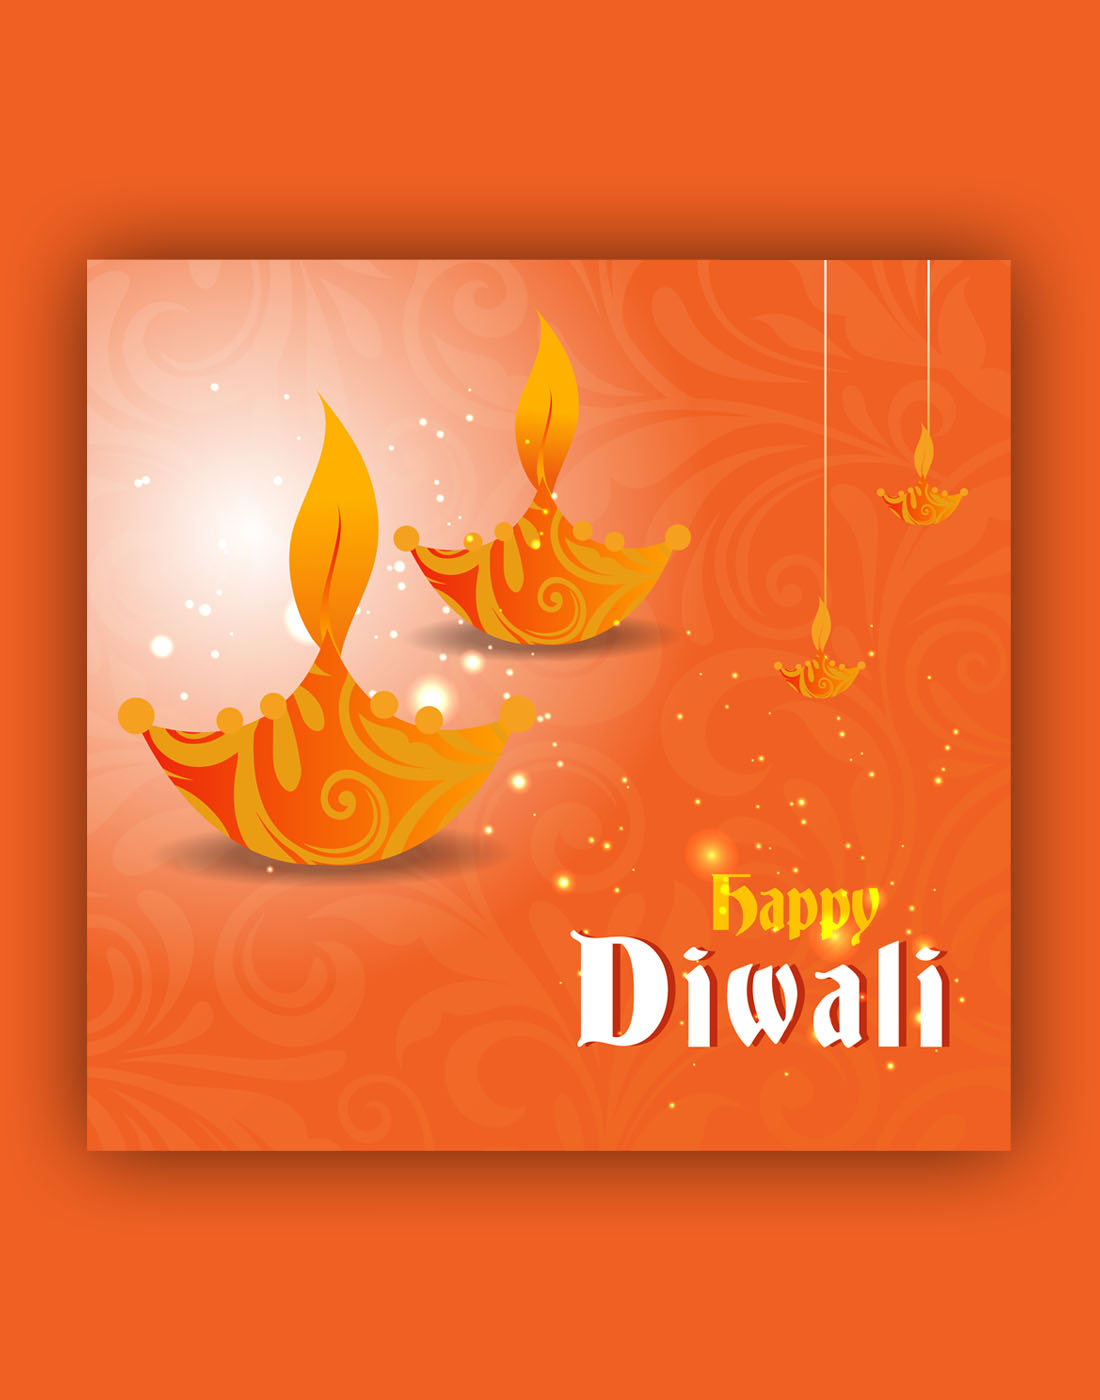 diwali vector download